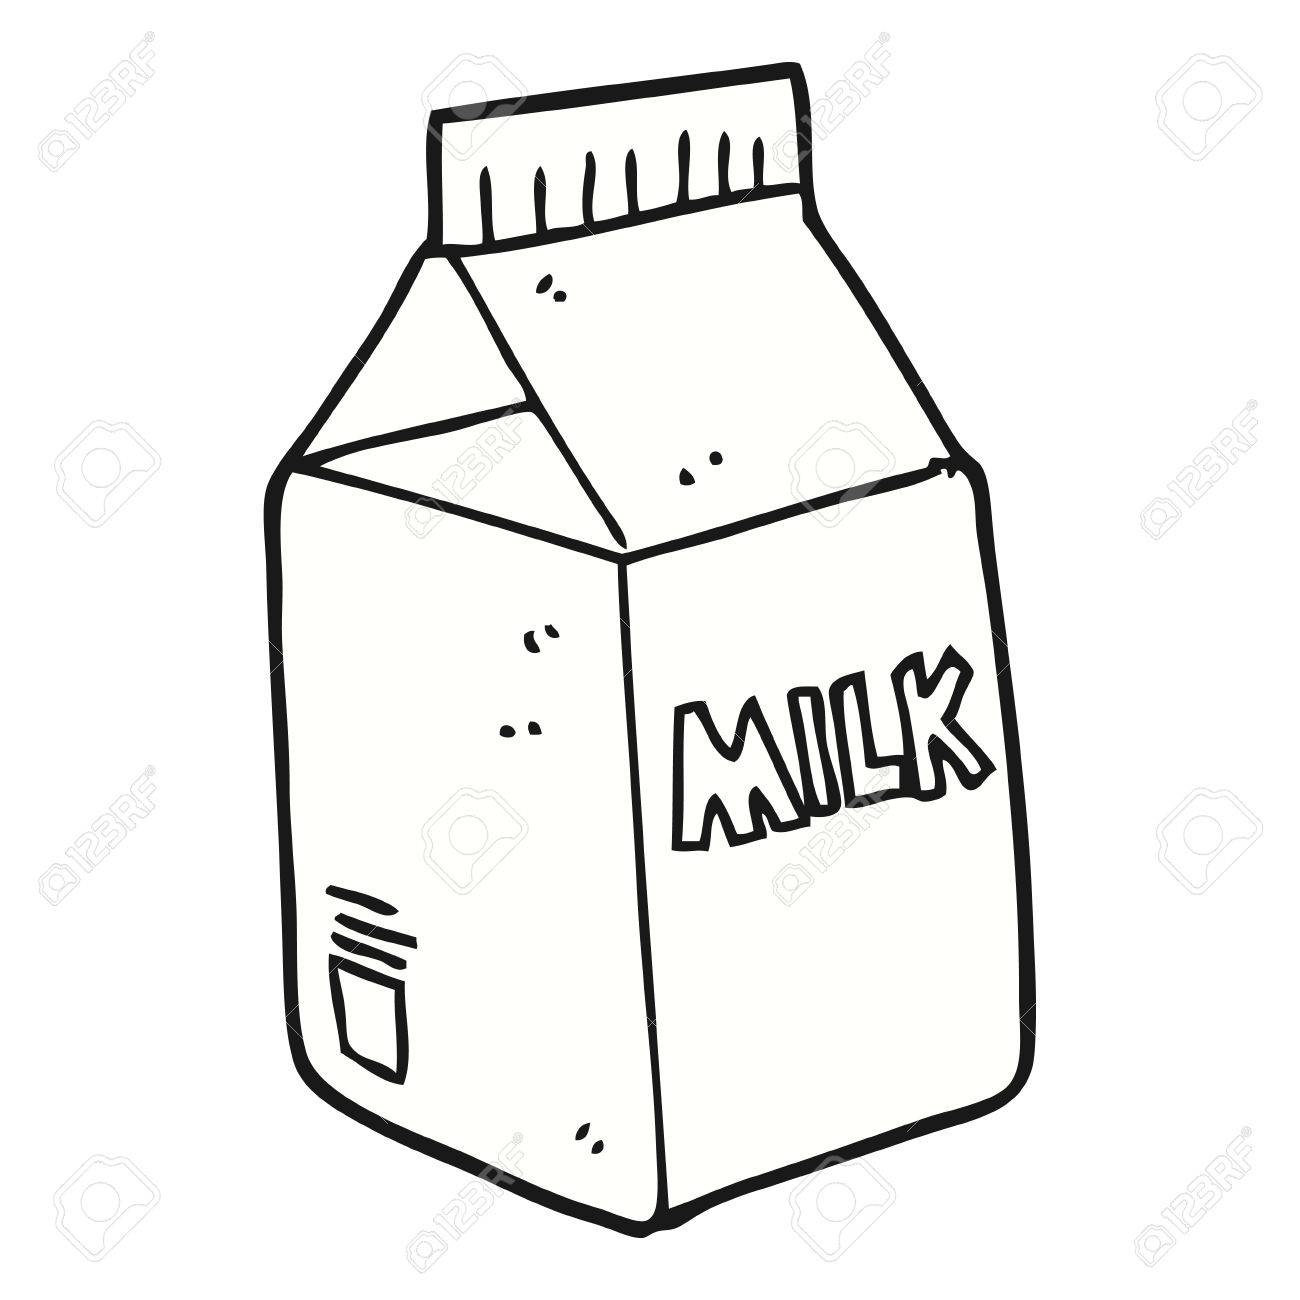 1300x1300 Freehand Drawn Cartoon Milk Carton Royalty Free Cliparts, Vectors